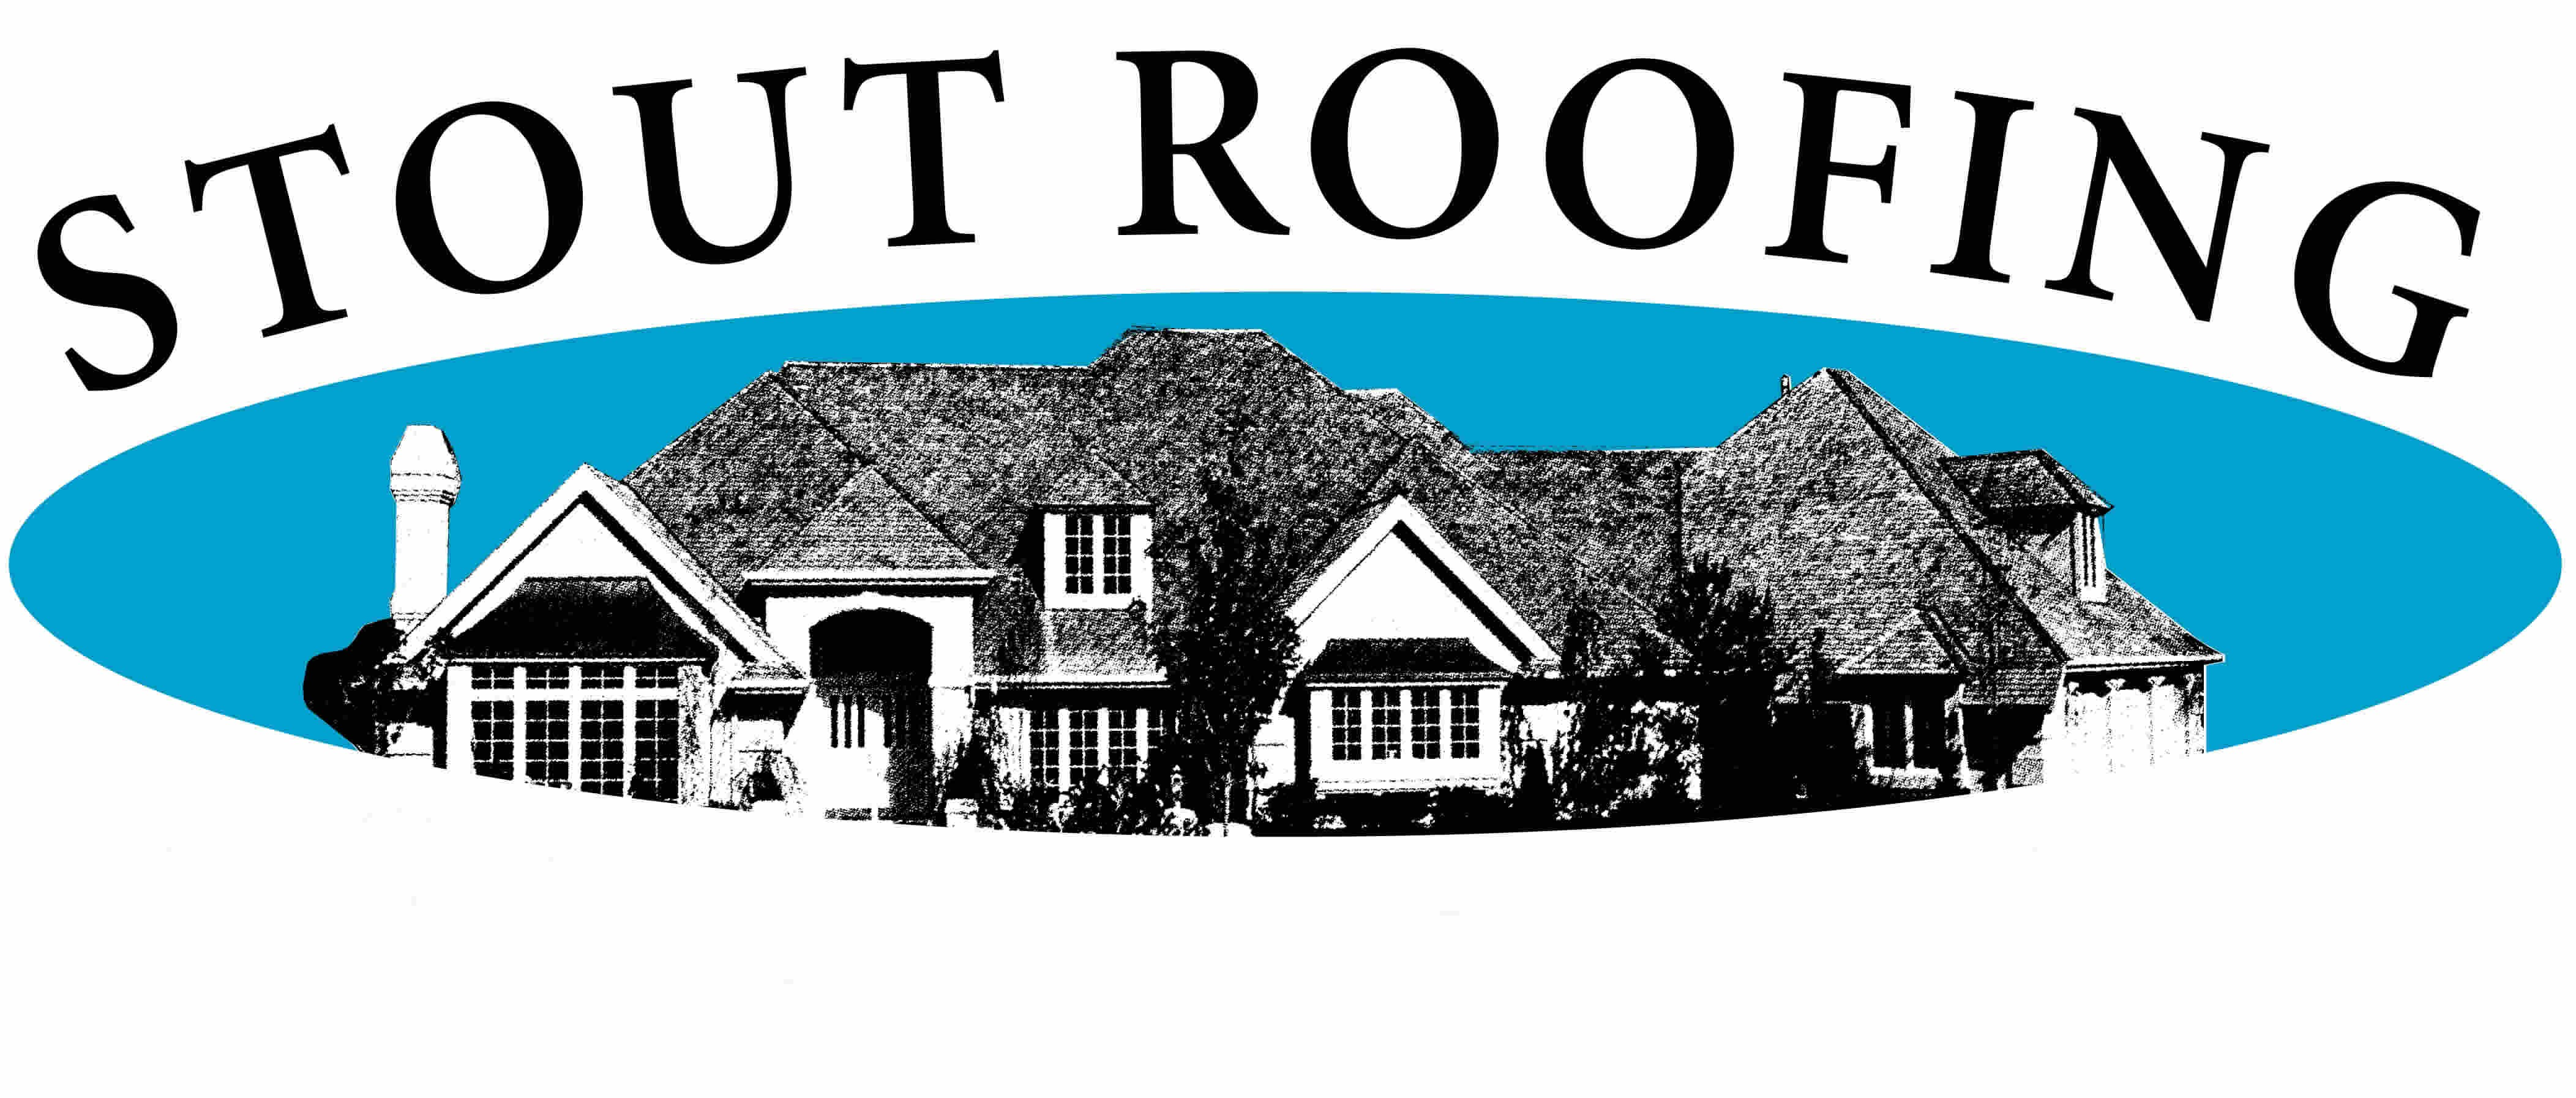 STOUT ROOFING logo